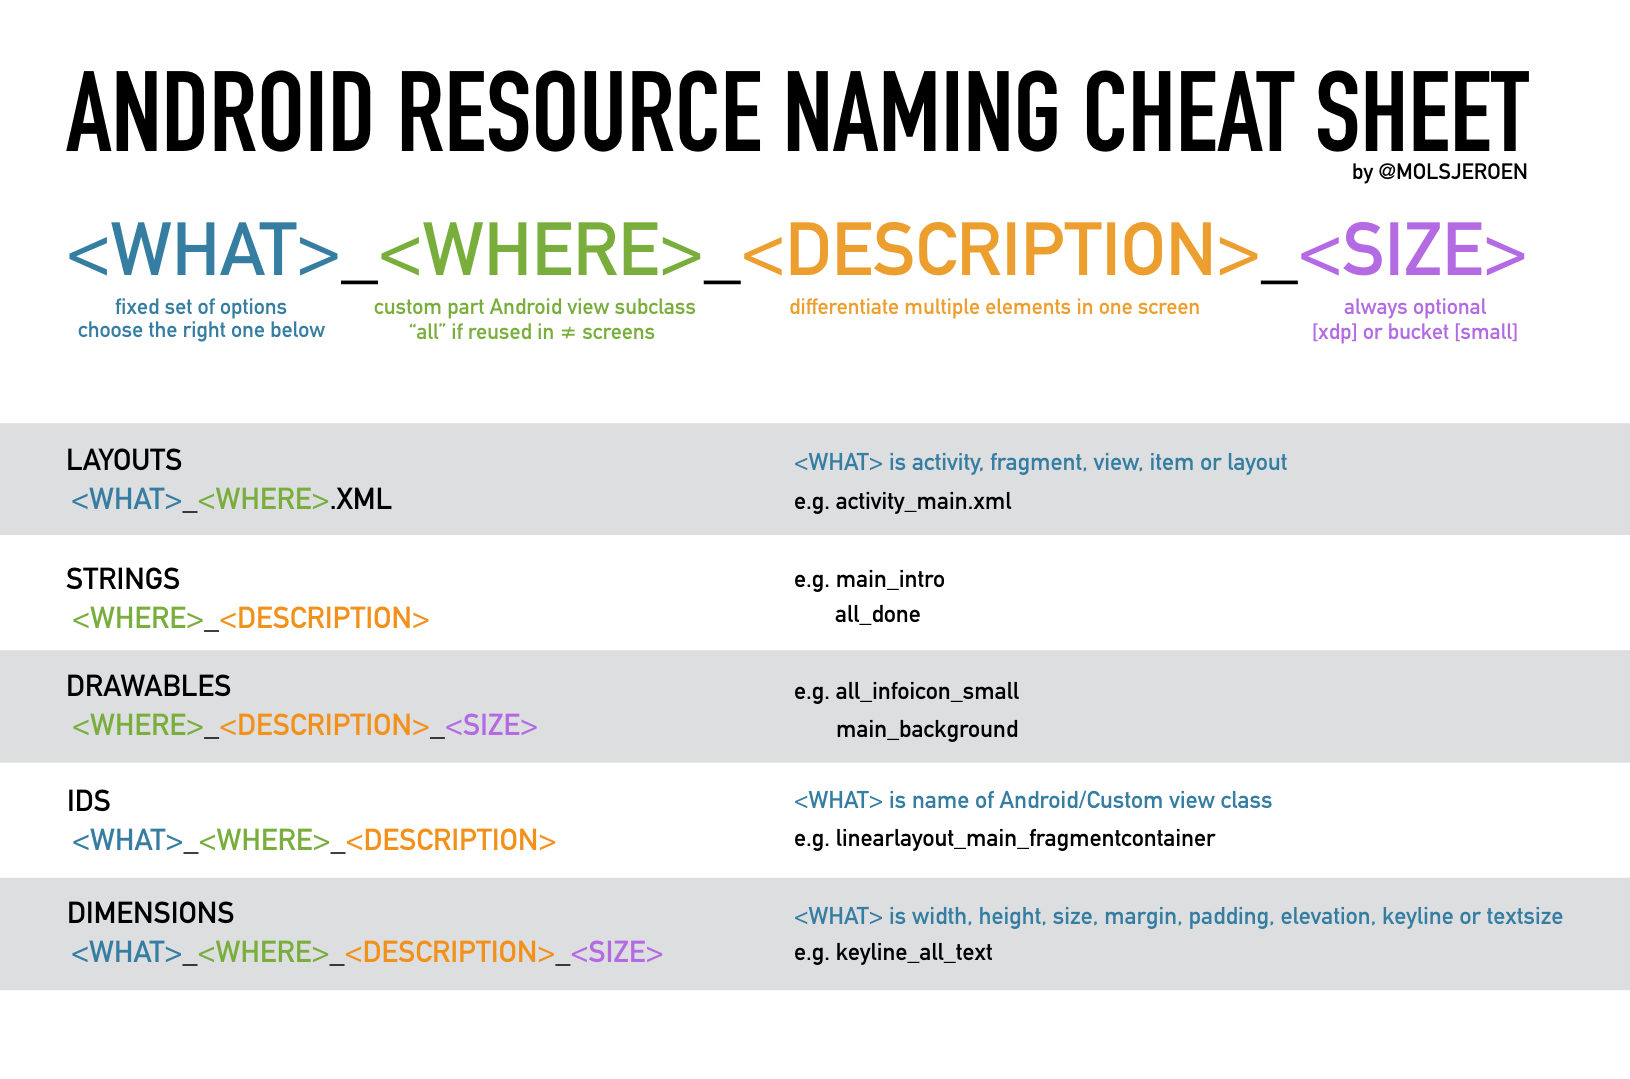 Resource naming cheat sheet